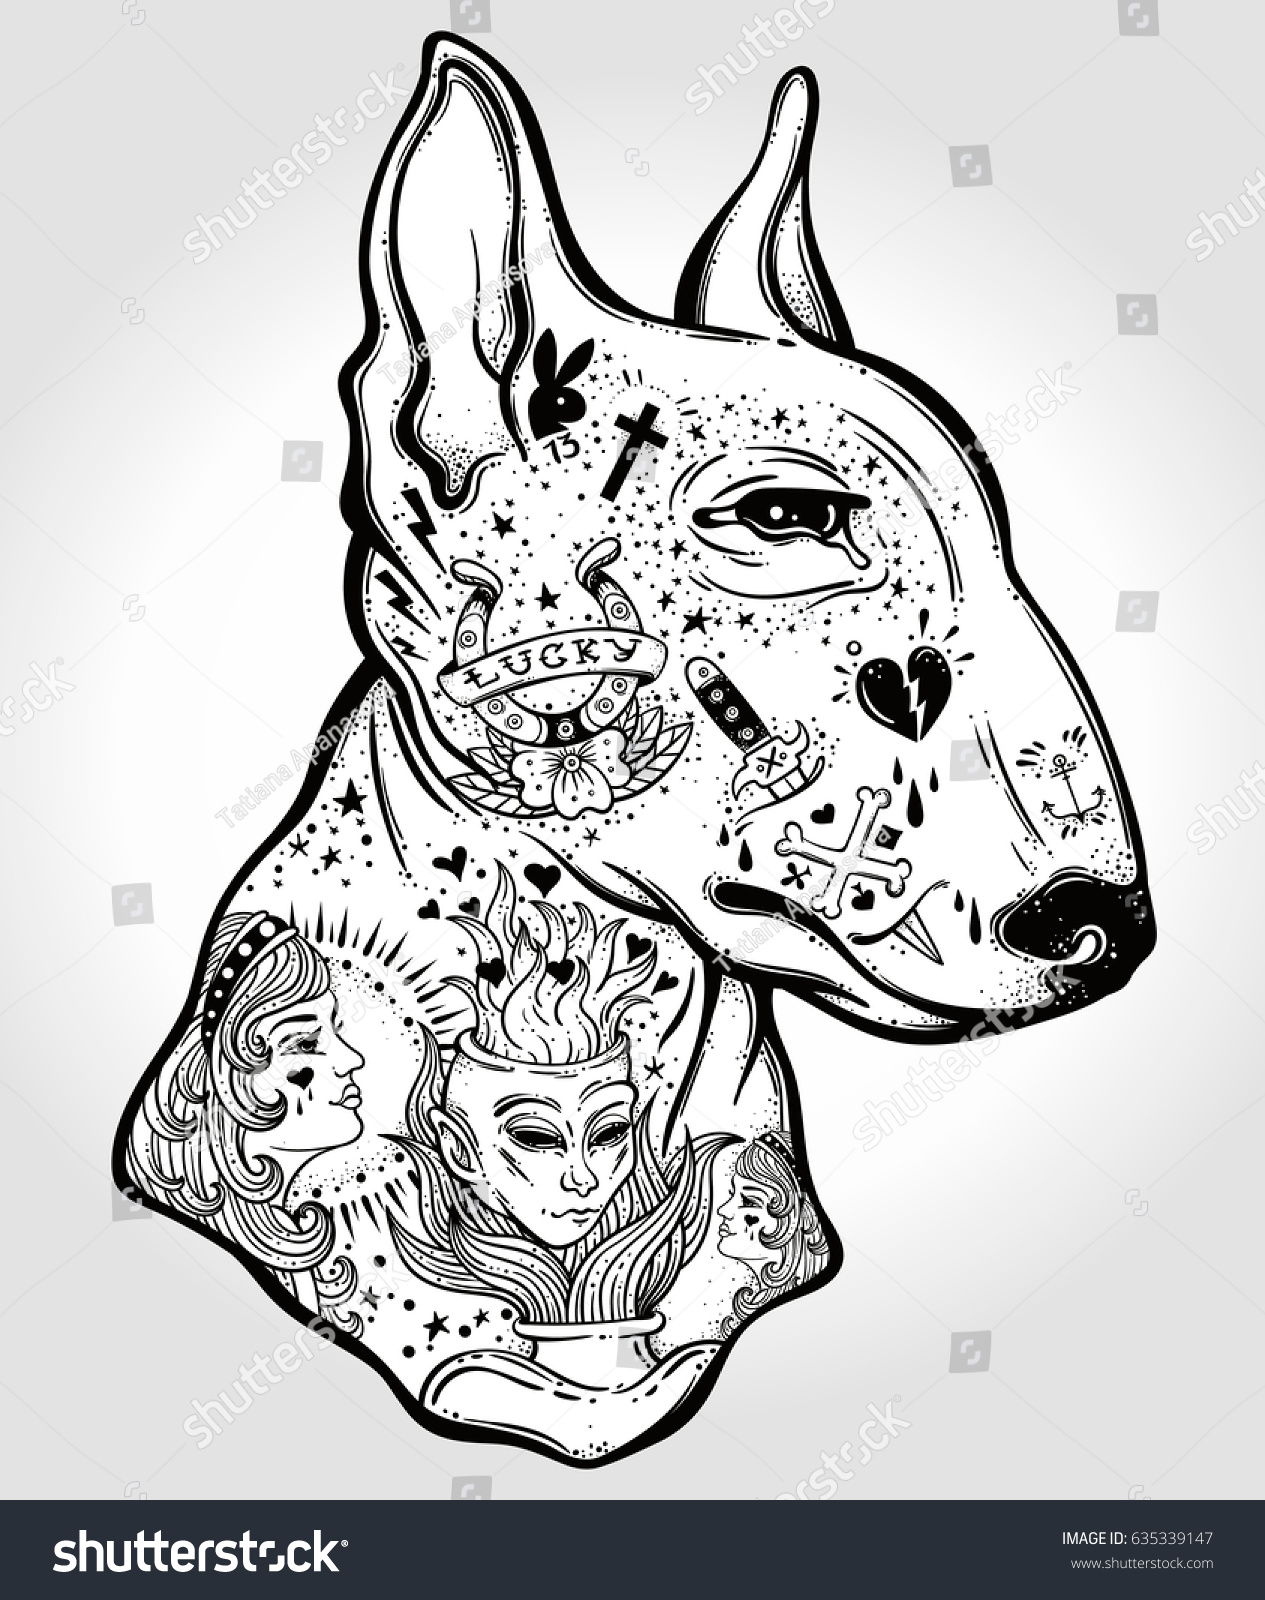 bull terriers portrait made oldstylized tattoo stock vector 635339147 shutterstock. Black Bedroom Furniture Sets. Home Design Ideas